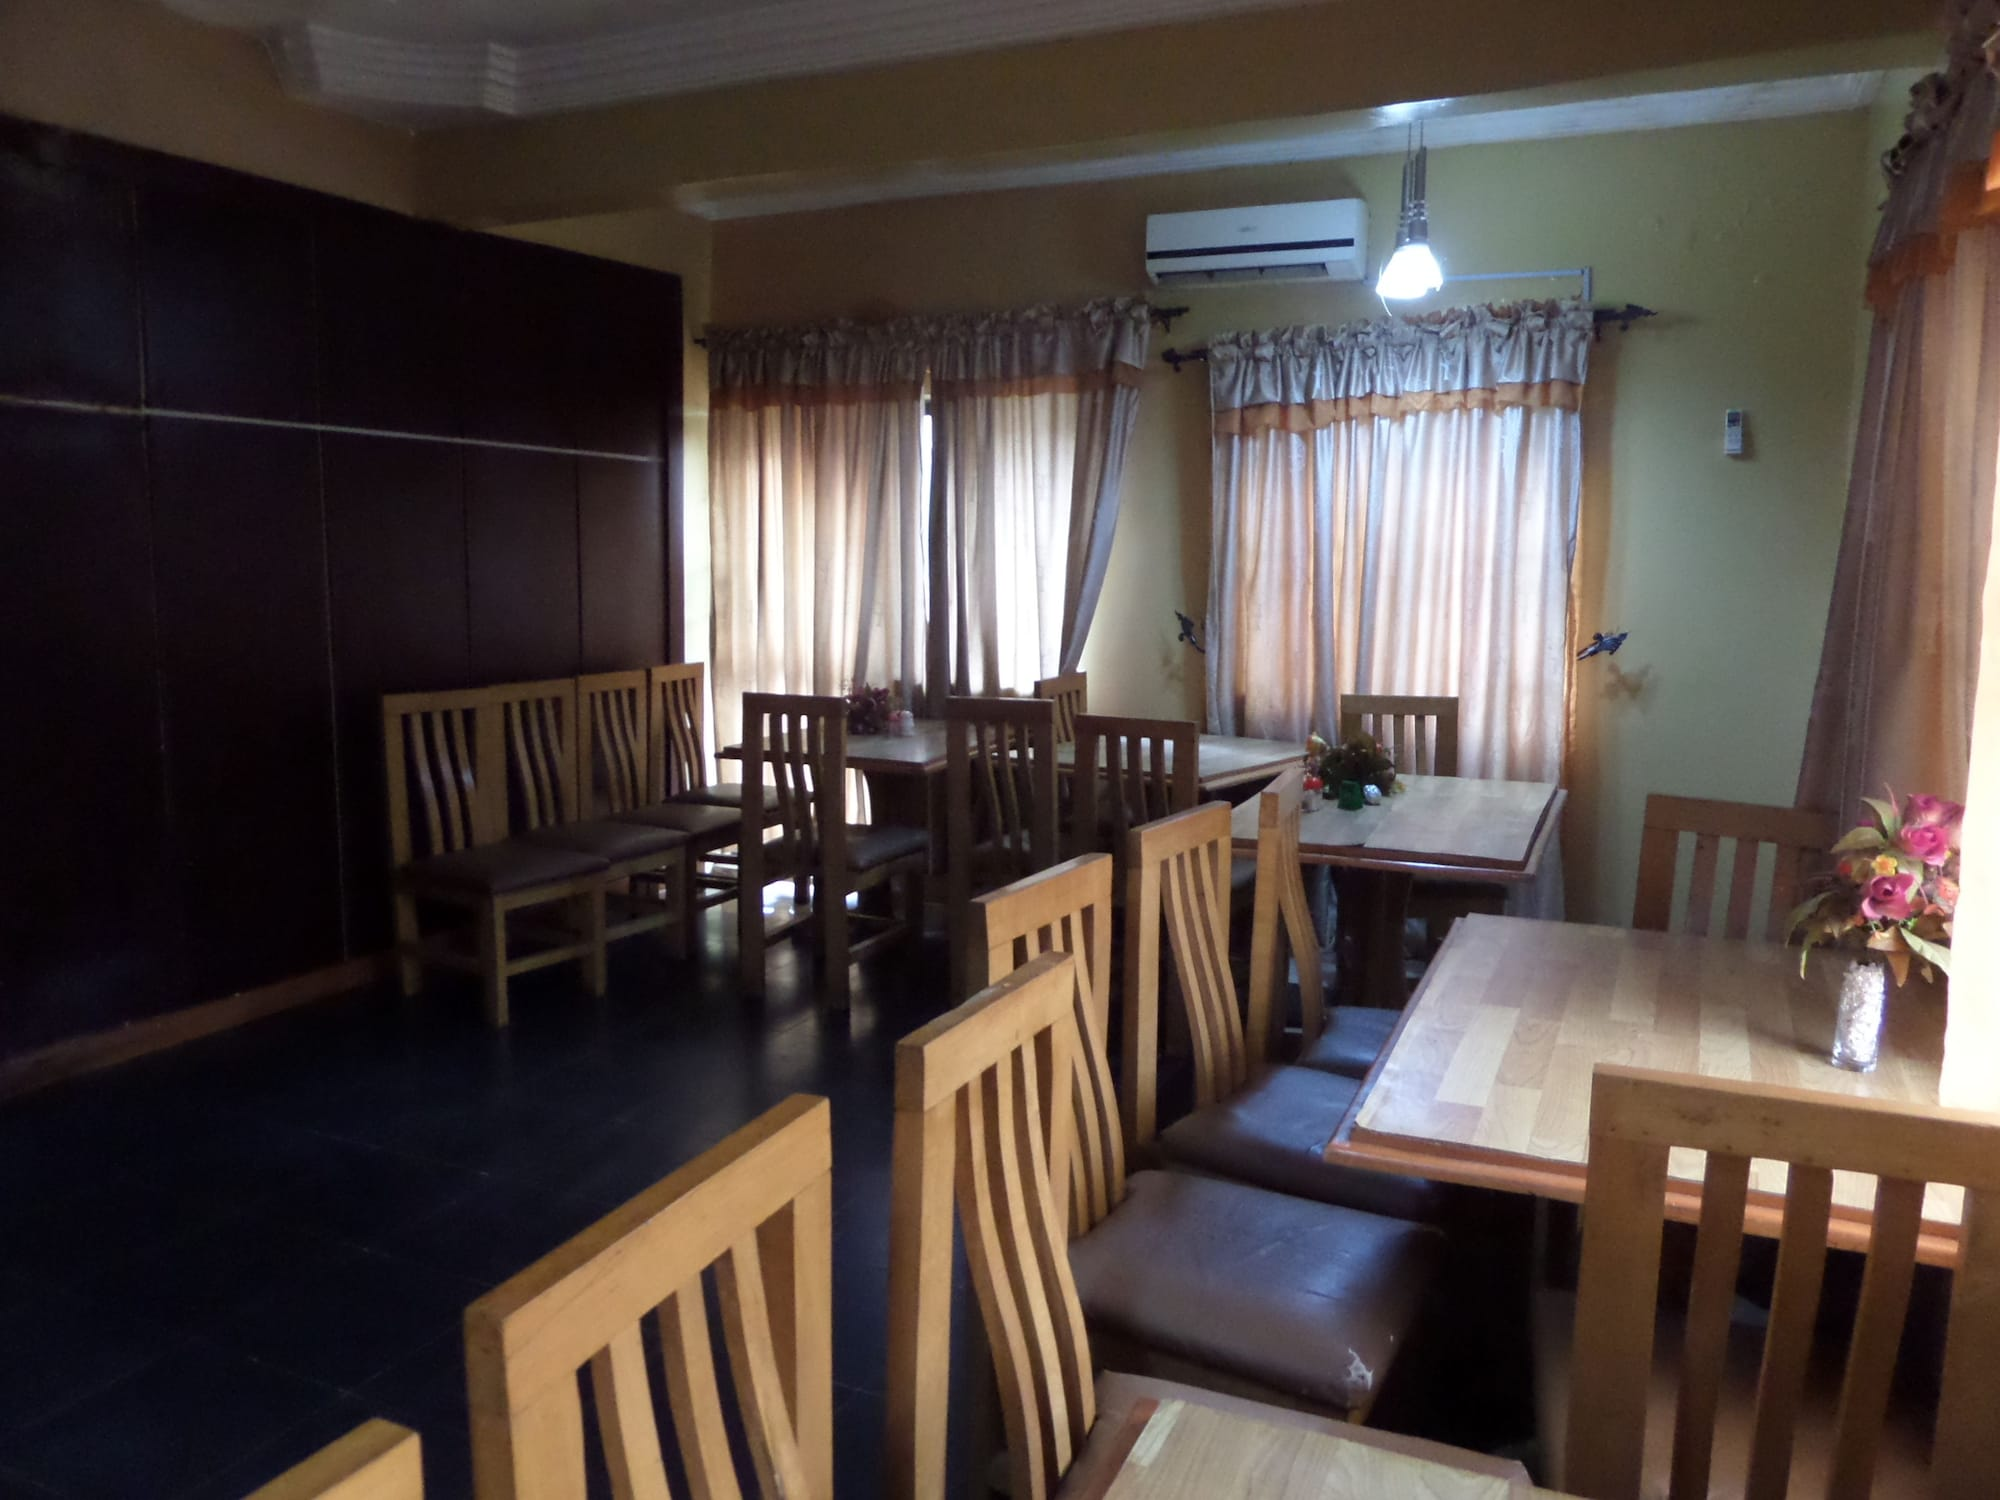 Scrolab Executive Hotel, IbadanSouth-West